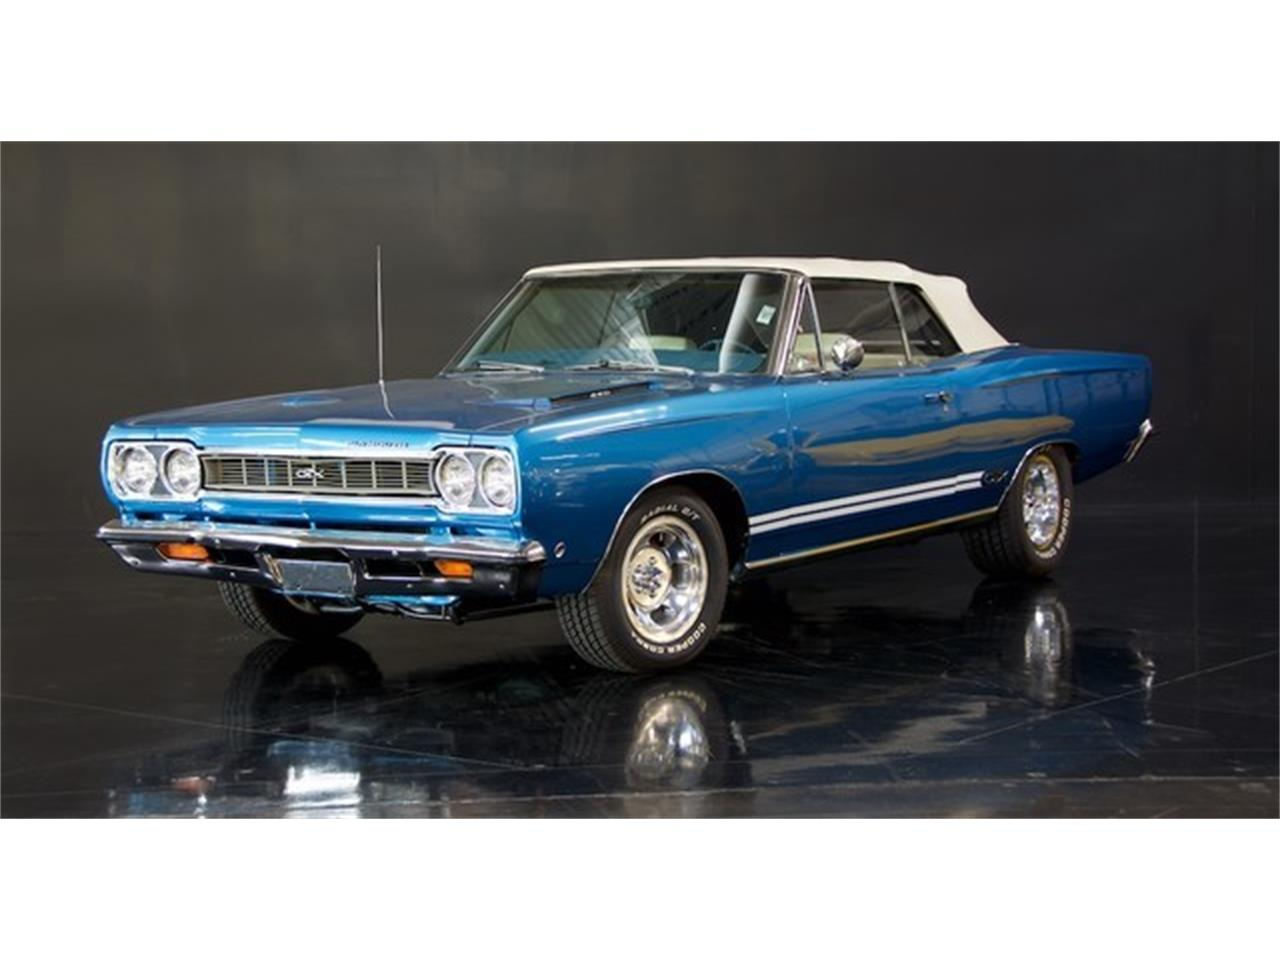 1968 Plymouth Gtx For Sale Cc 898091 1960 Hemi Large Picture Of 68 J8yz